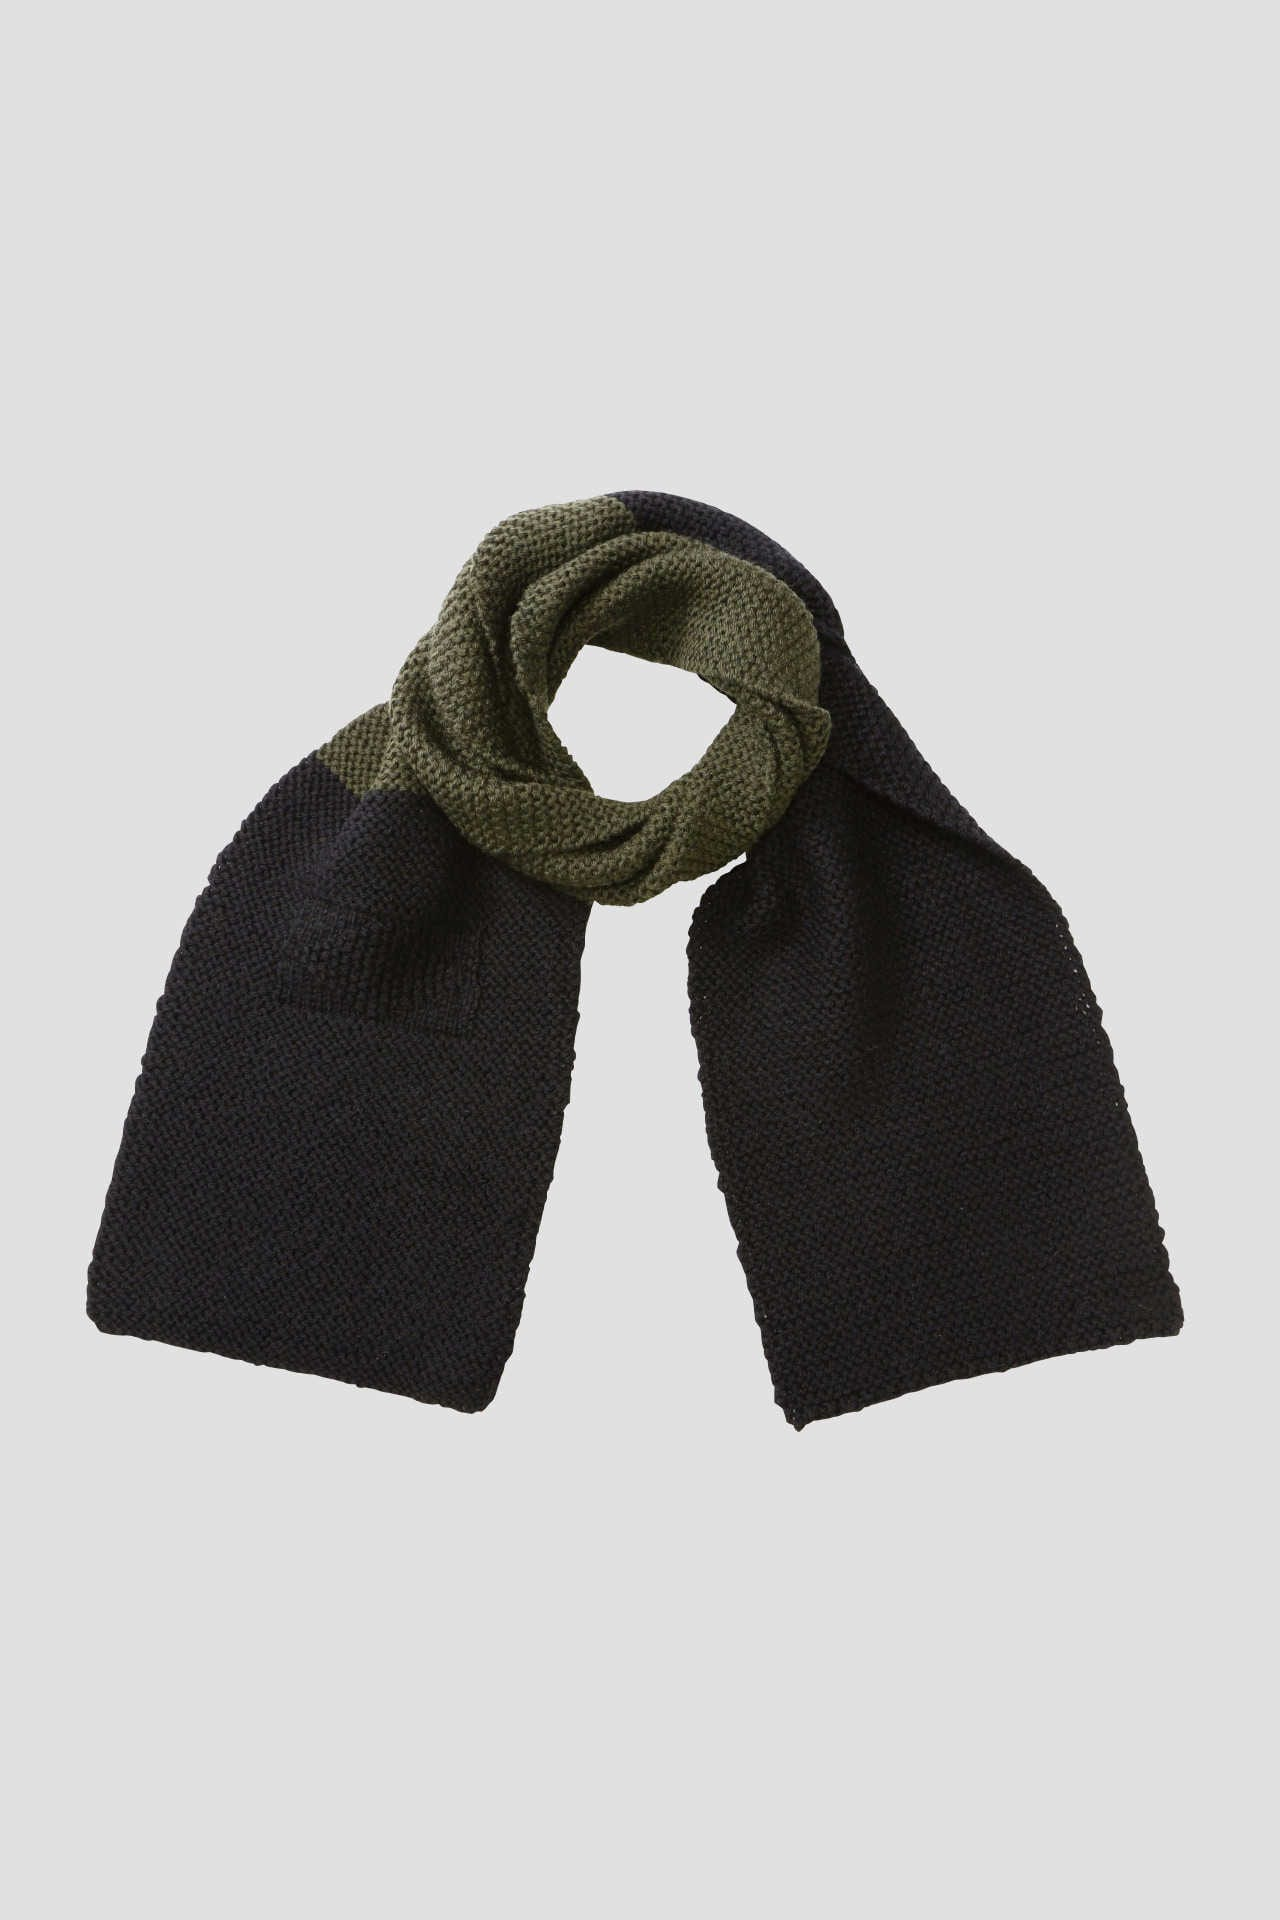 MARION FOALE SCARF